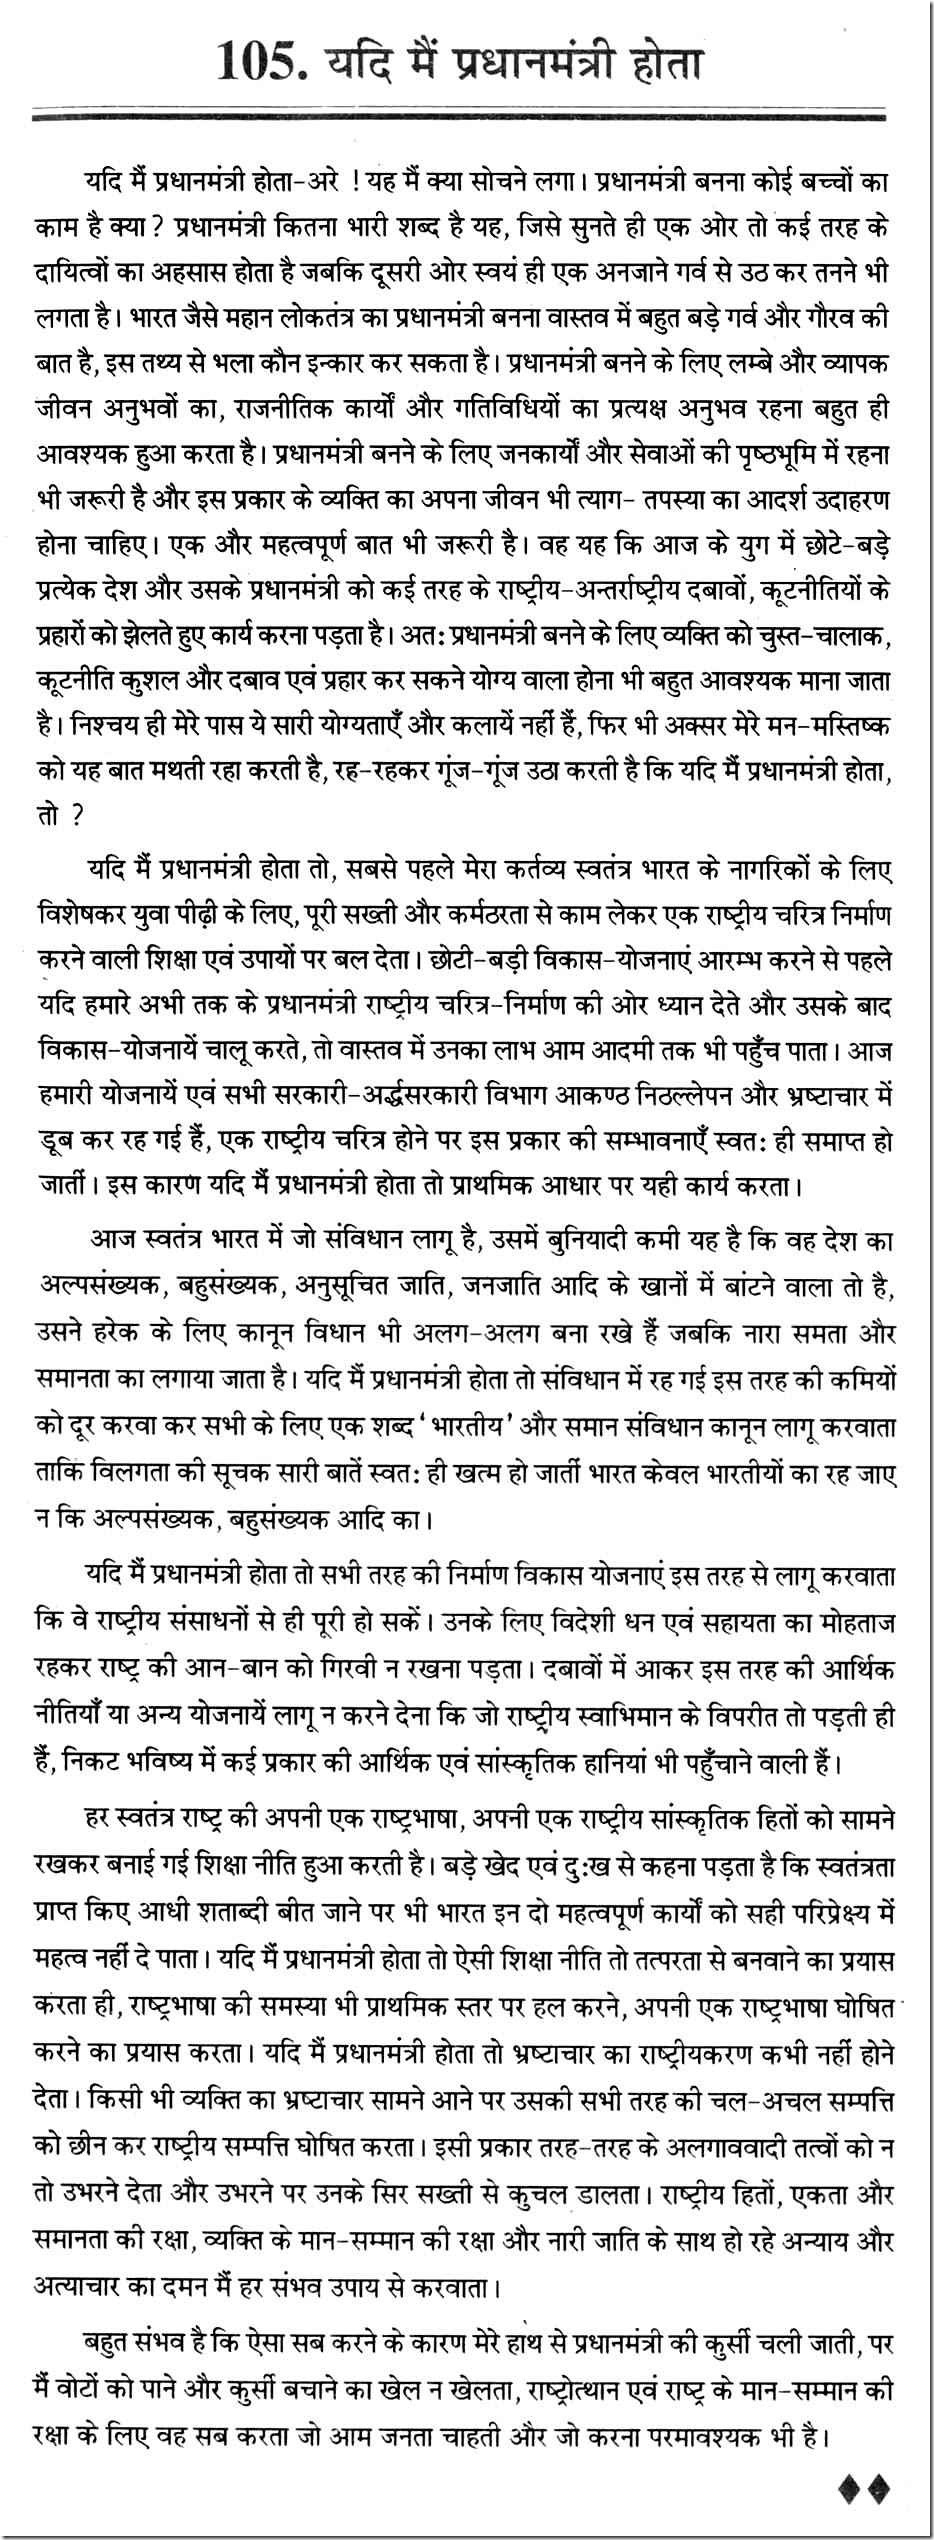 010 Prime Minister Essay Term Paper Writing Service Cmcourseworkhwja Writings Reviews 10106 Outstanding On Narendra Modi In Marathi First Of India Hindi Full